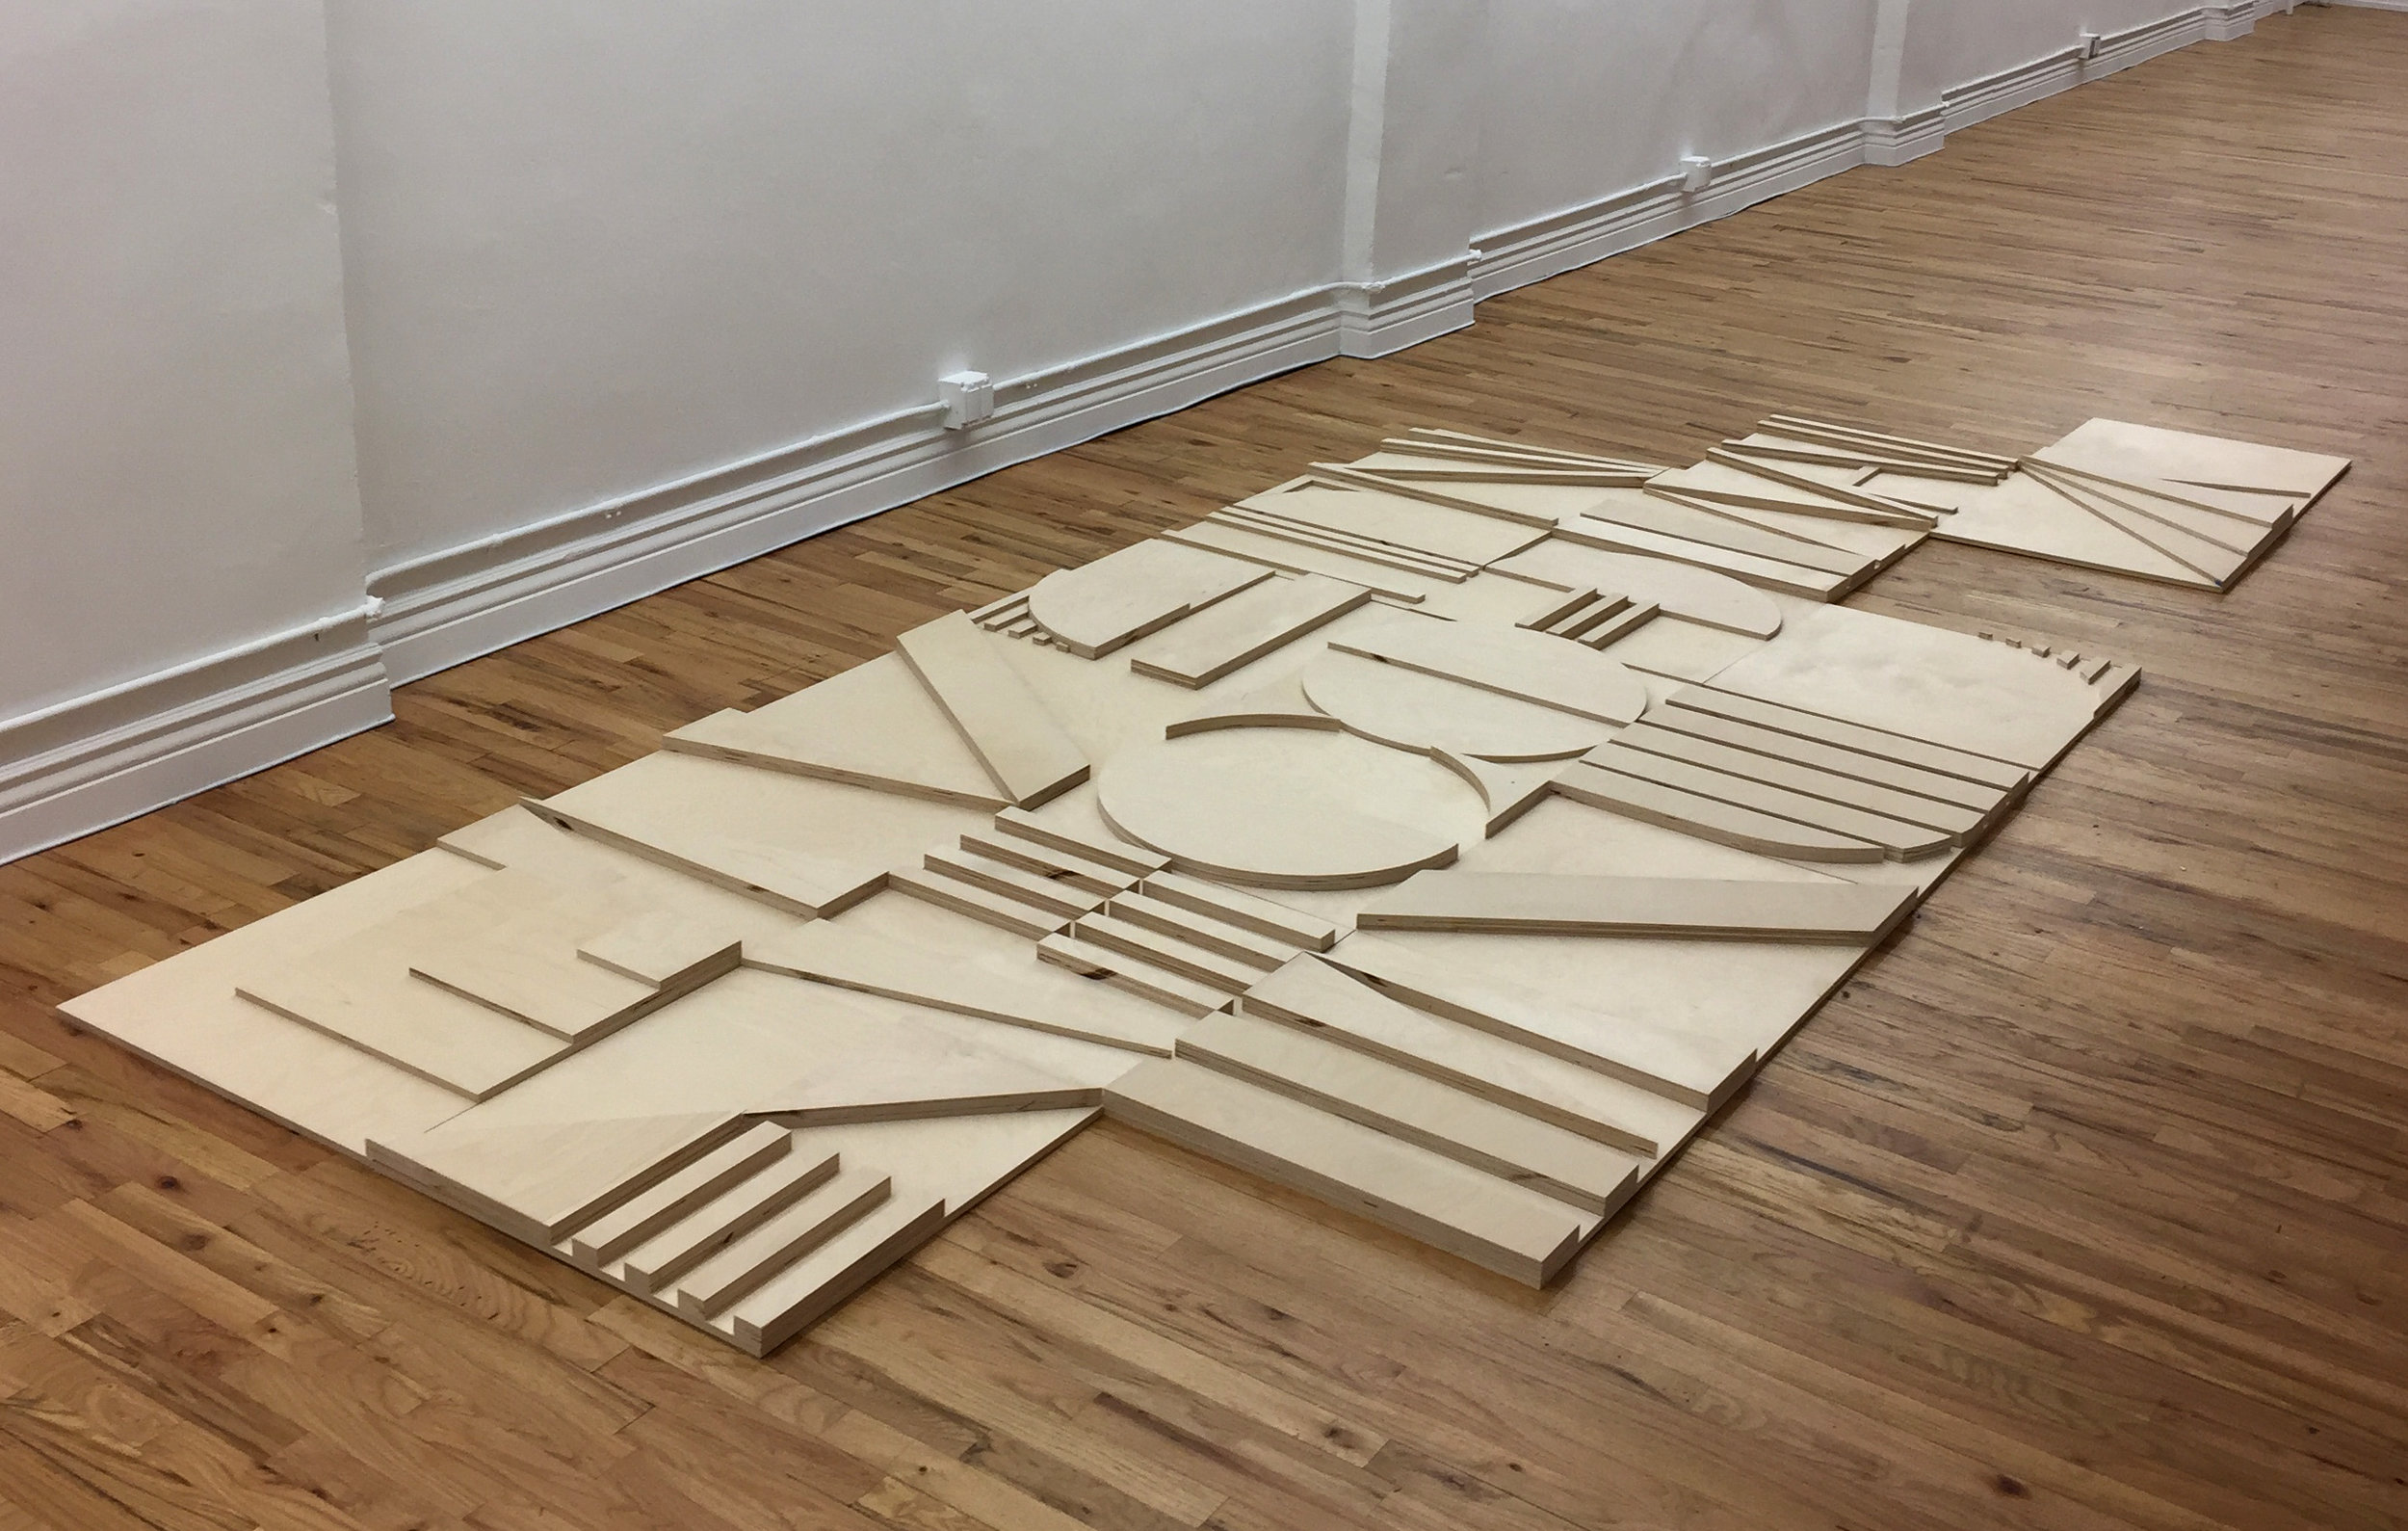 19 panels of birch plywood, to be painted white (work in progress at Hercules Studios)